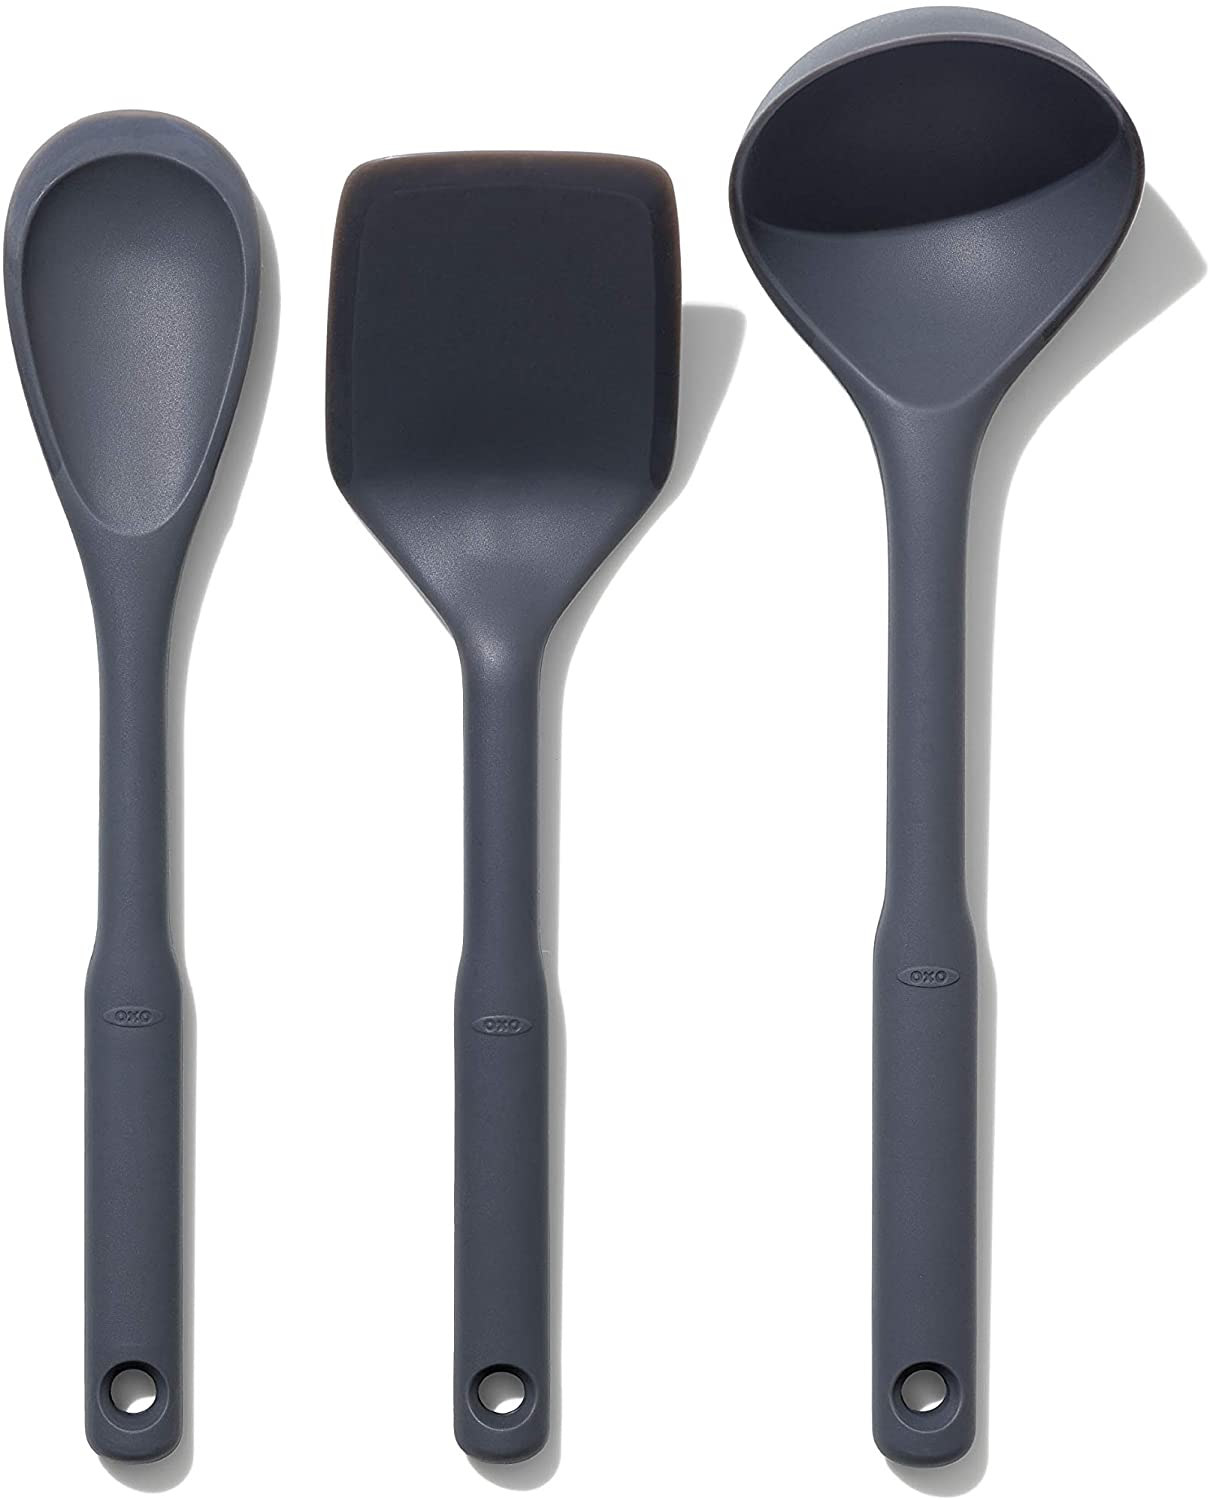 OXO Good Grips 3-Piece Silicone Utensil Set